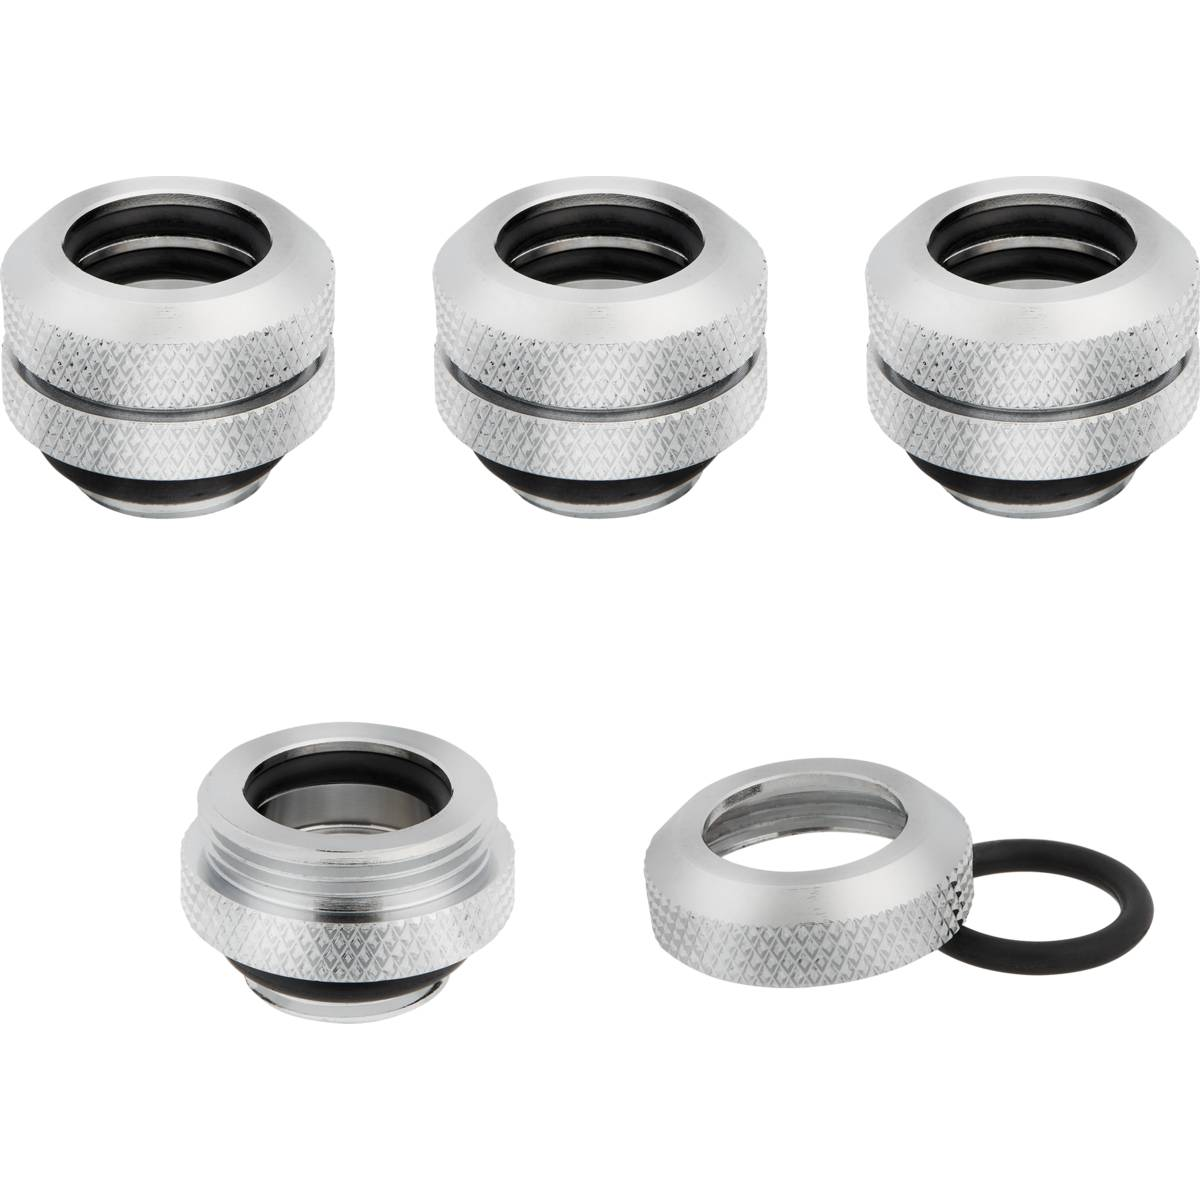 CORSAIR Hydro X Series XF Hardline 12mm OD Fitting Four Pack - Chrome